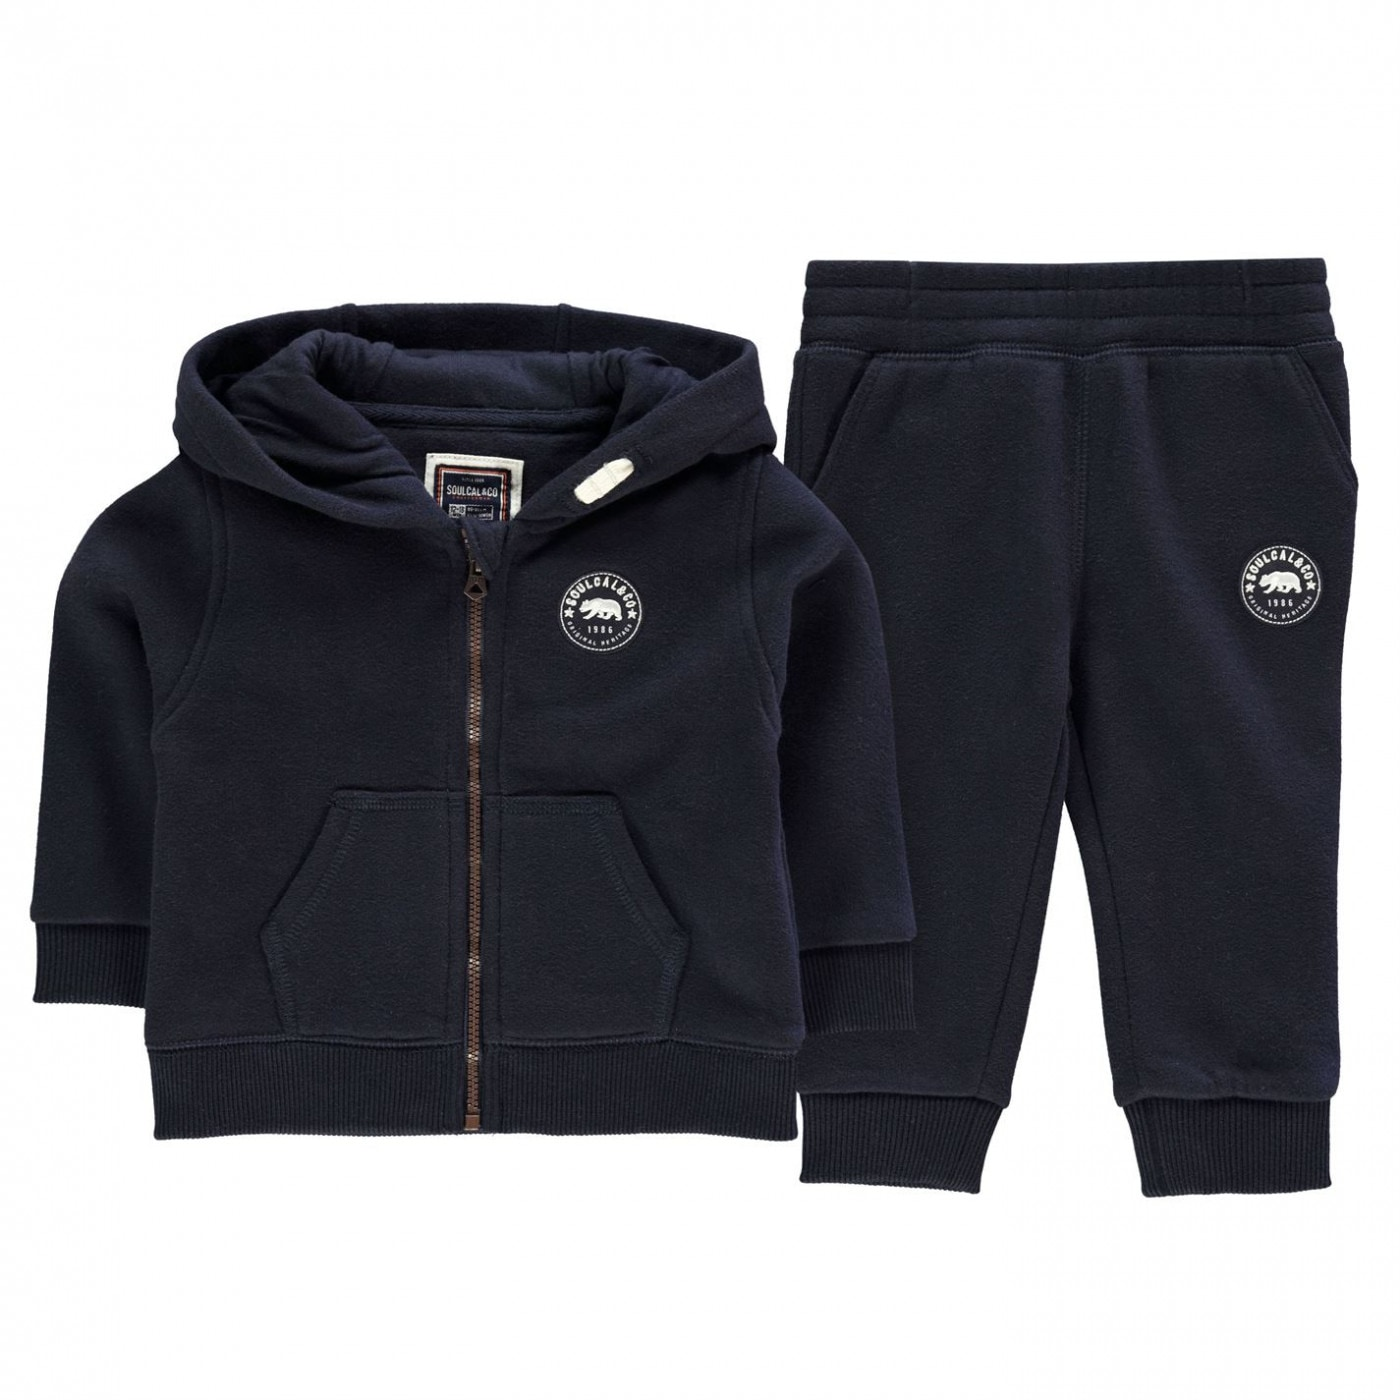 SoulCal Signature Zip Track Set Baby